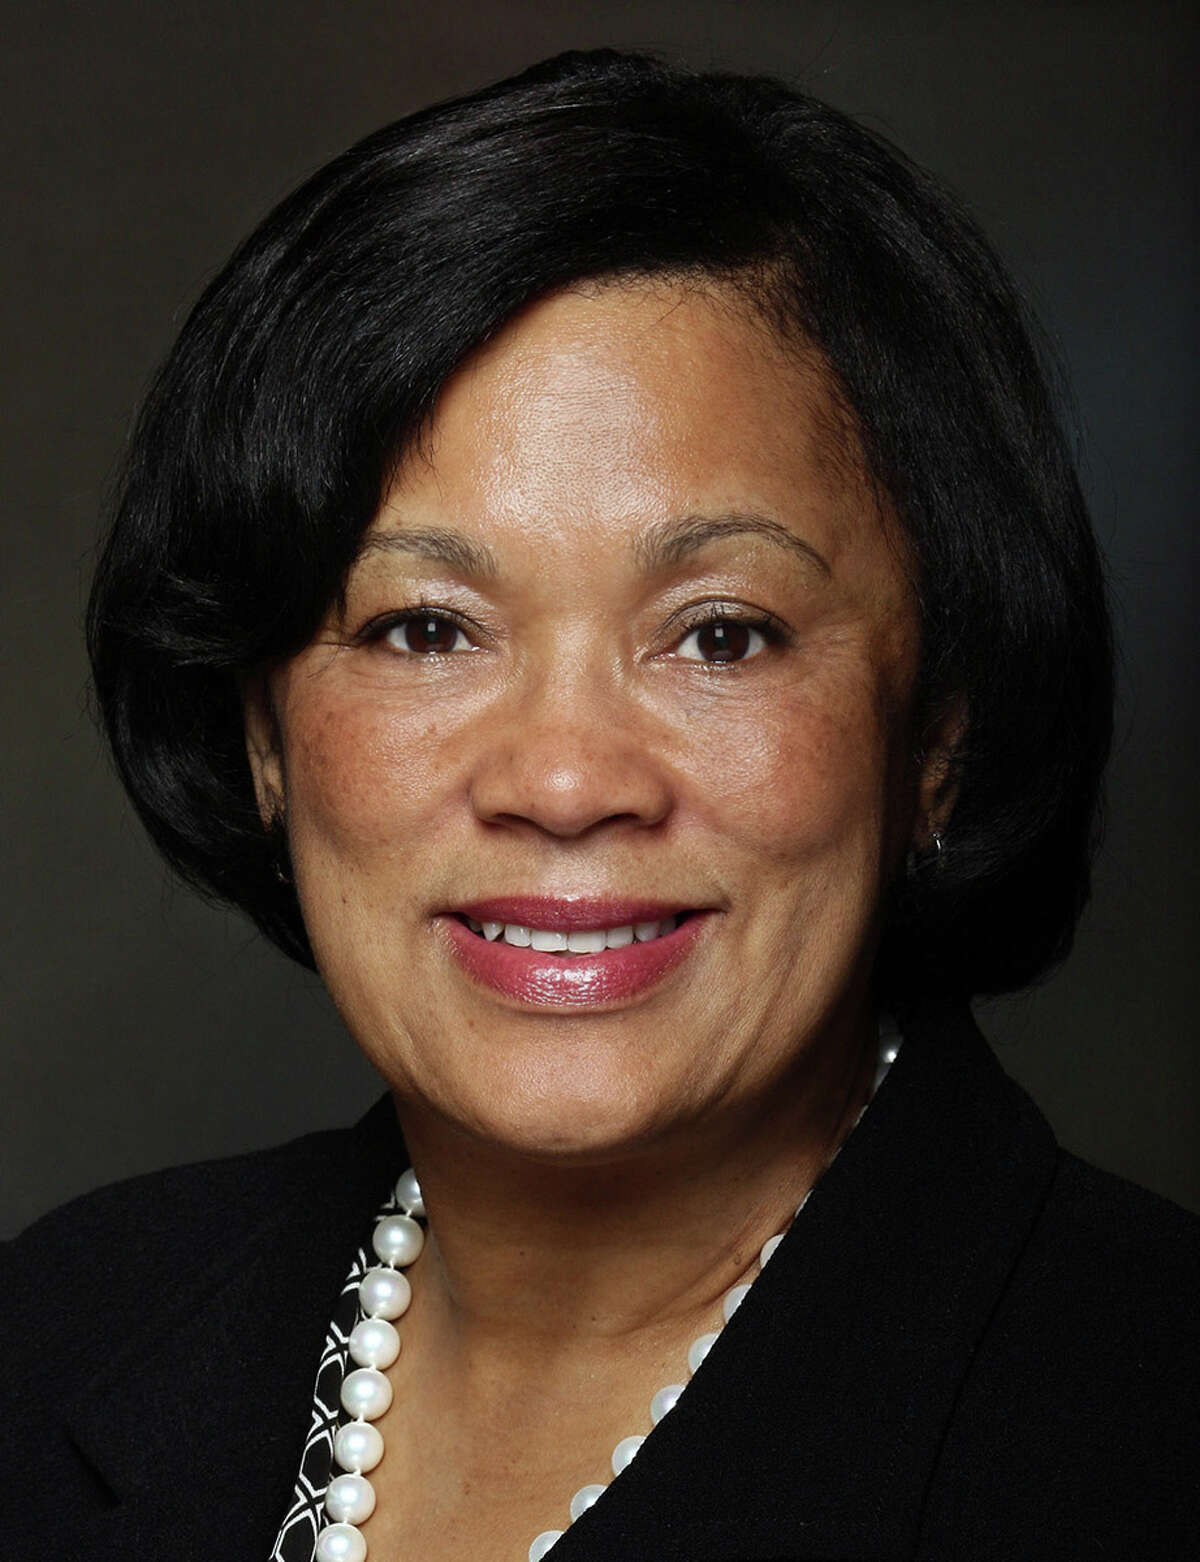 Democratic State Sen. Toni Harp is the newly elected Mayor of New Haven.